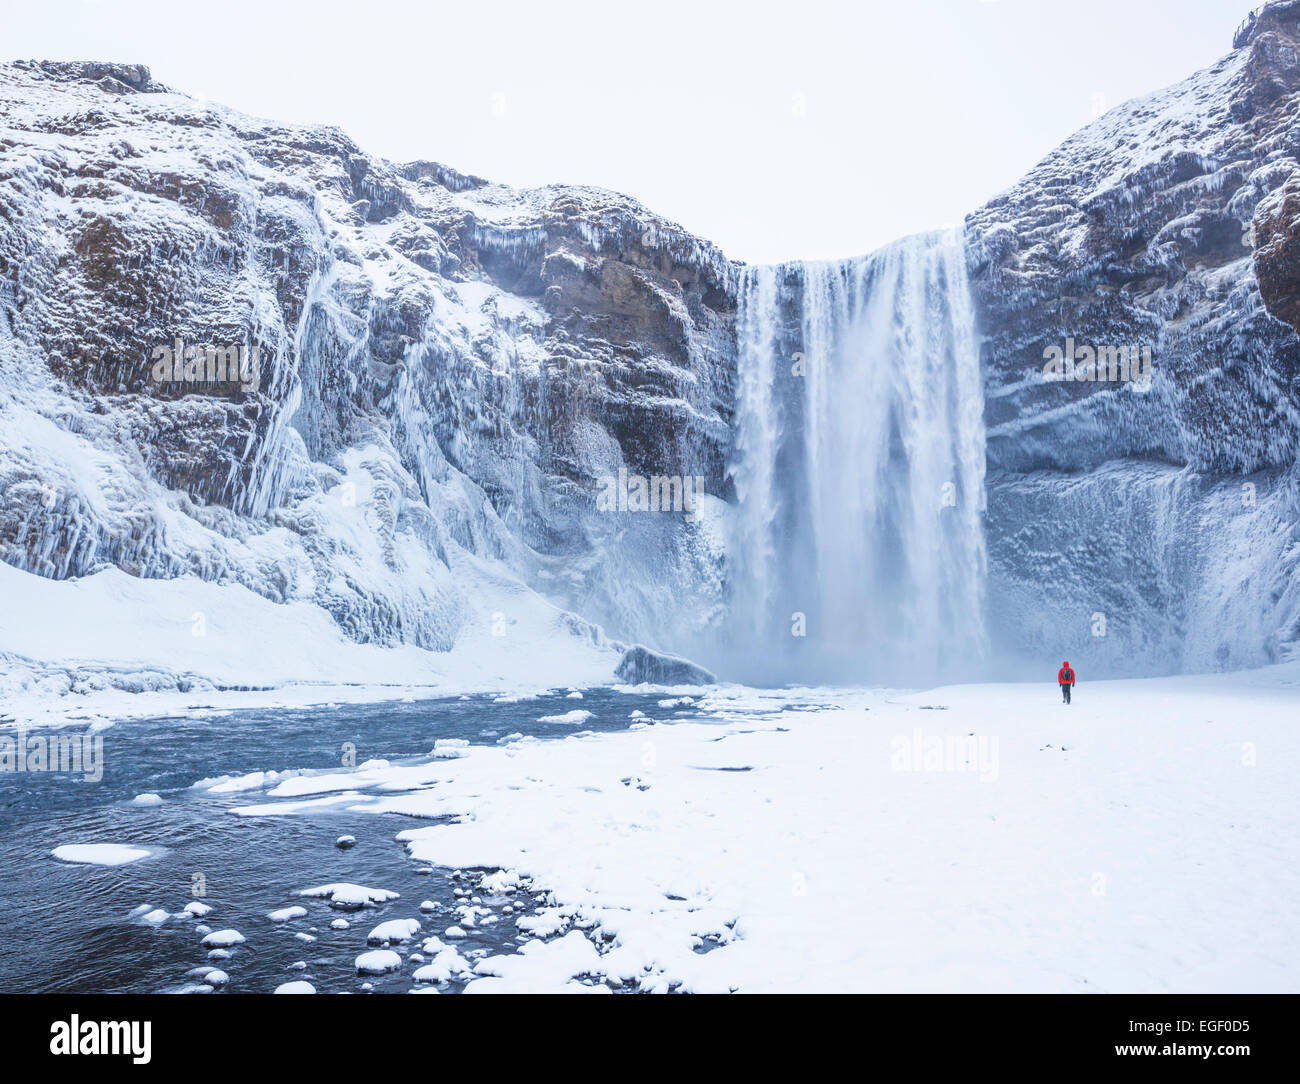 One Man in red jacket at Skogafoss waterfall in winter Skogar South Iceland Iceland Europe - Stock Image